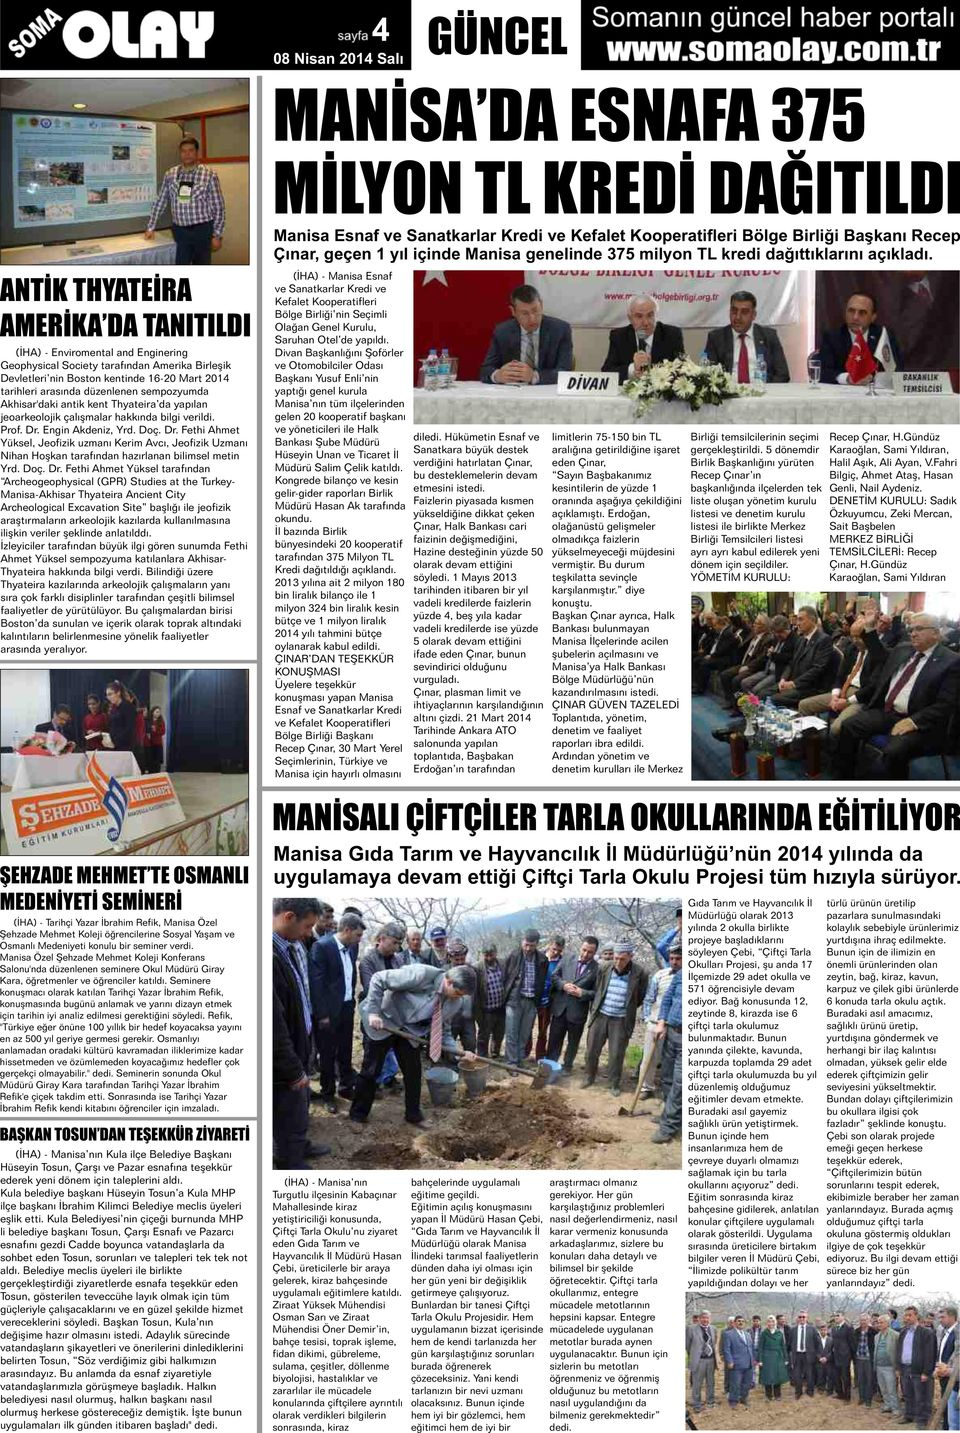 NTİK THYATEİRA MERİKA DA TANITILDI (İHA) - Enviromental and Enginering Geophysical Society tarafından Amerika Birleşik Devletleri nin Boston kentinde 16-20 Mart 2014 tarihleri arasında düzenlenen